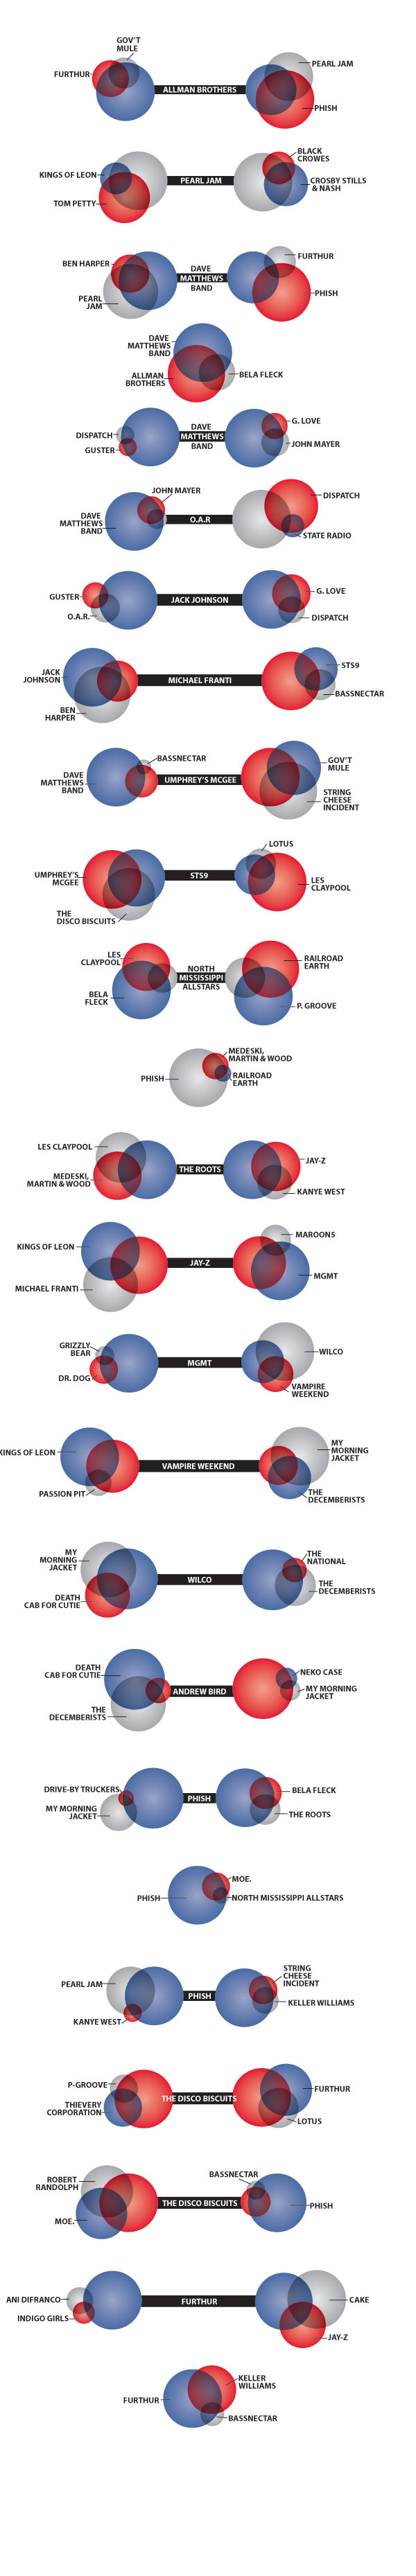 hight resolution of music makeup dna venn diagrams